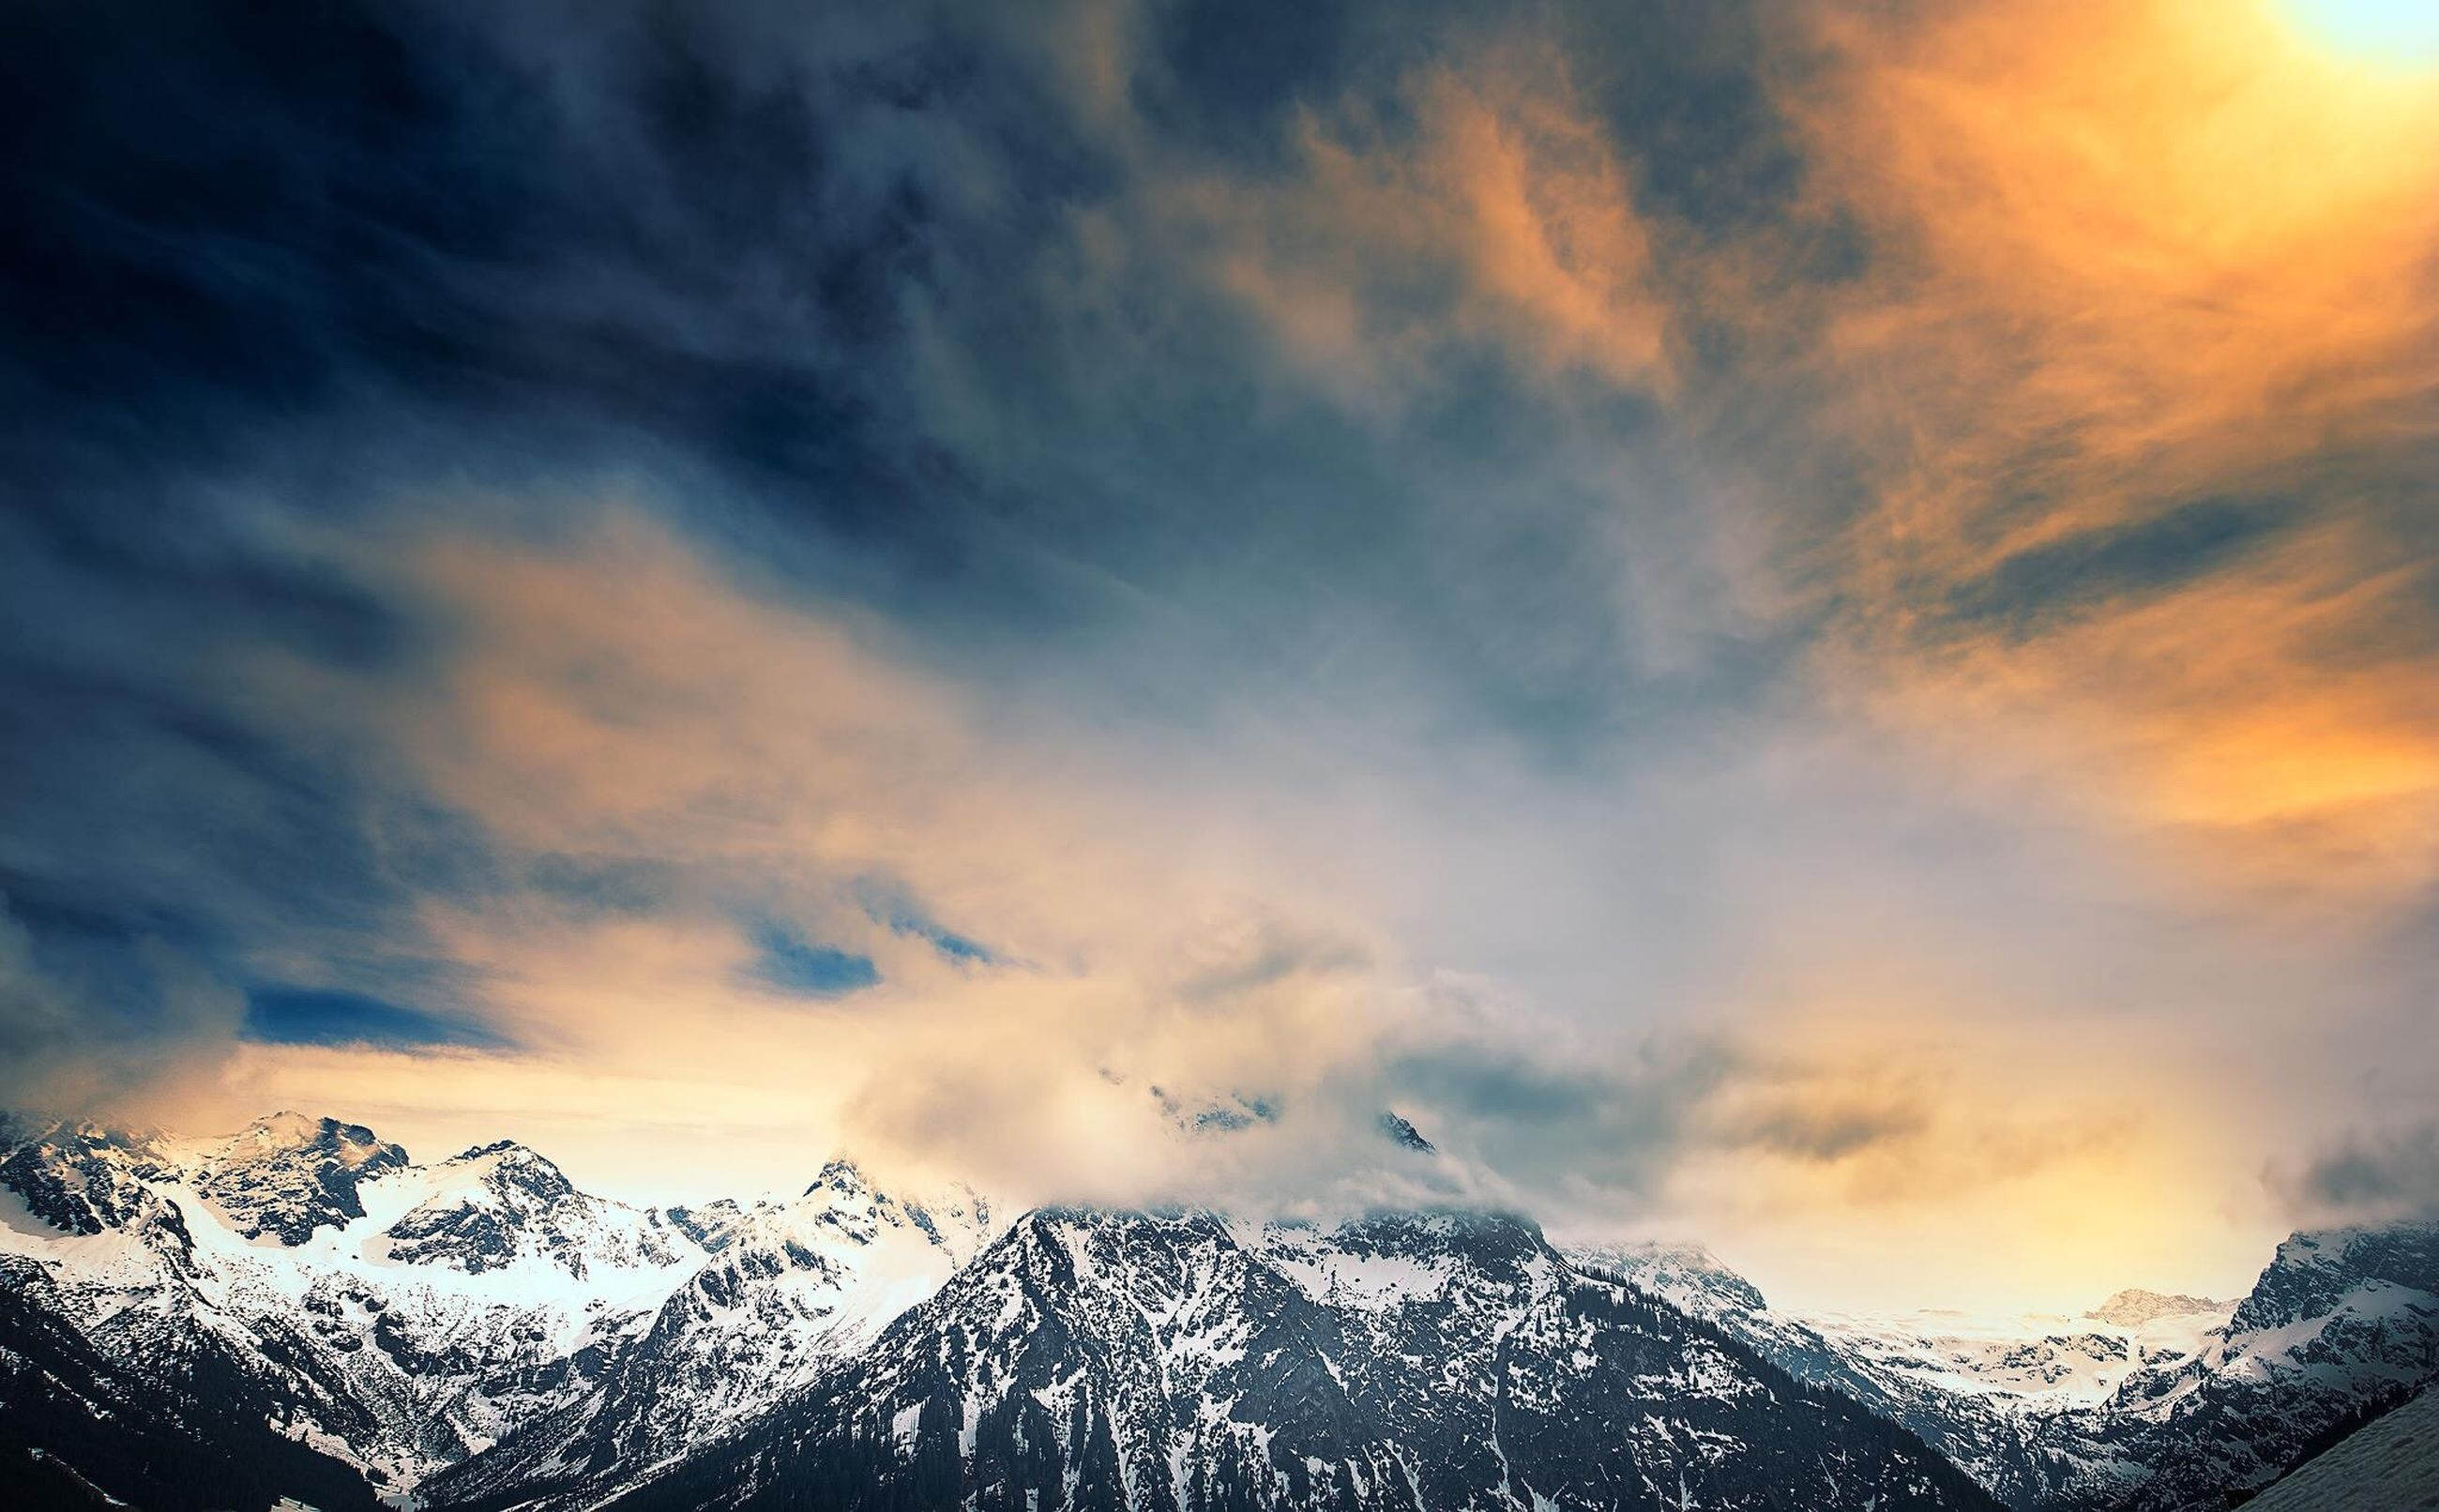 cloud - sky, dramatic sky, sky, nature, scenics, sunset, beauty in nature, mountain, mountain range, outdoors, landscape, no people, day